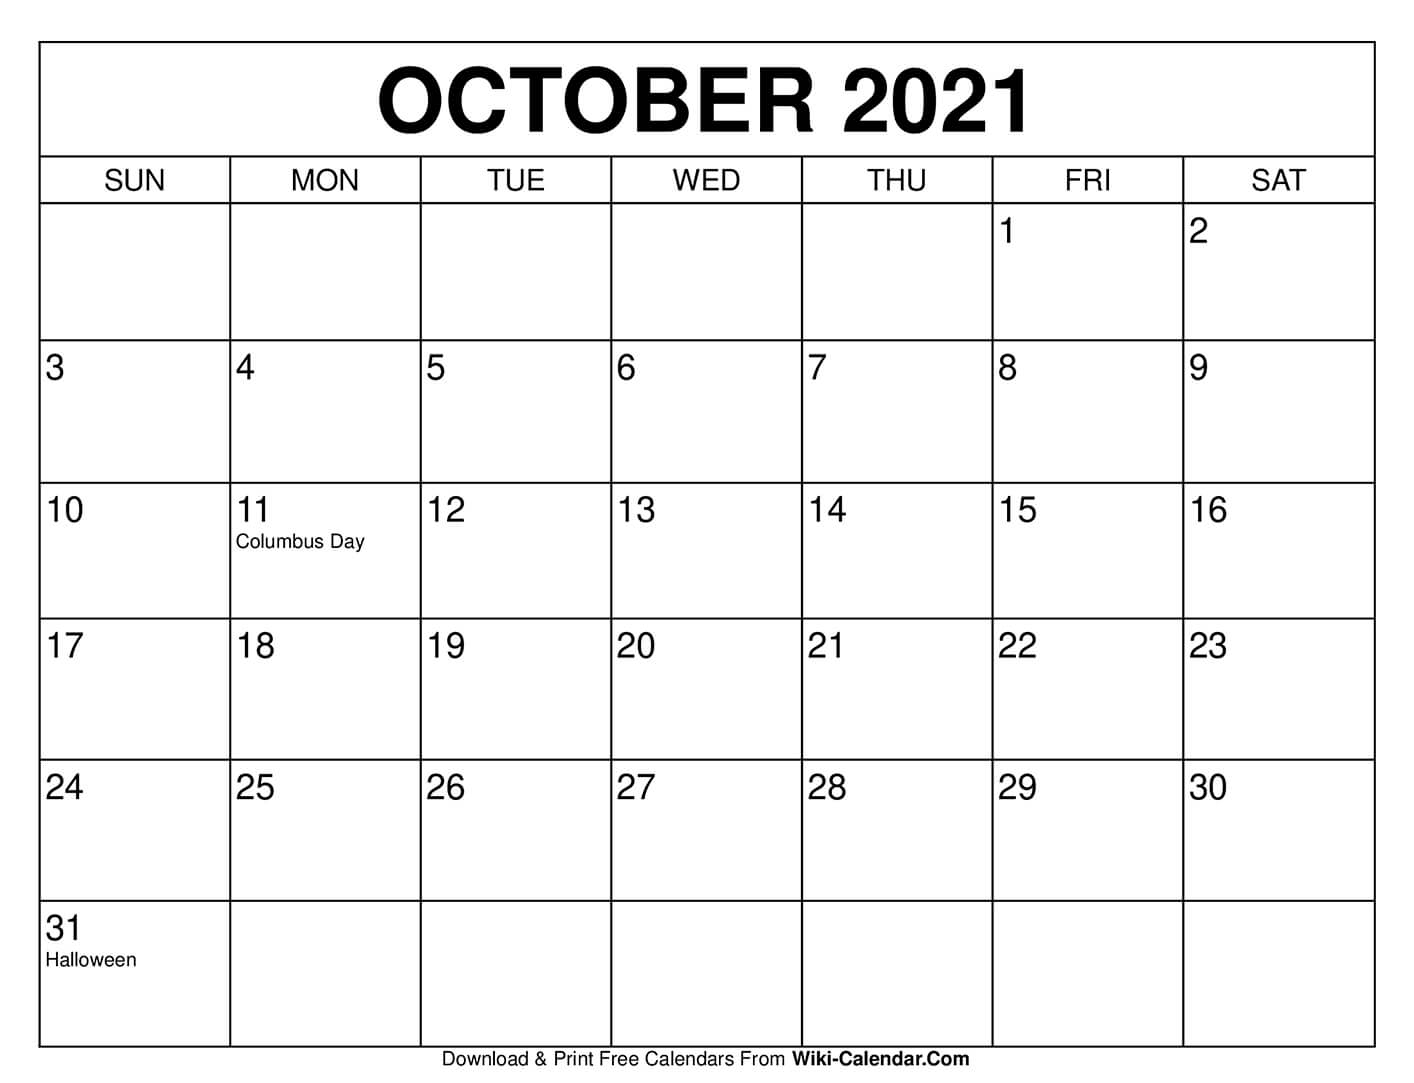 Get October 2021 Calendar To Color And Print